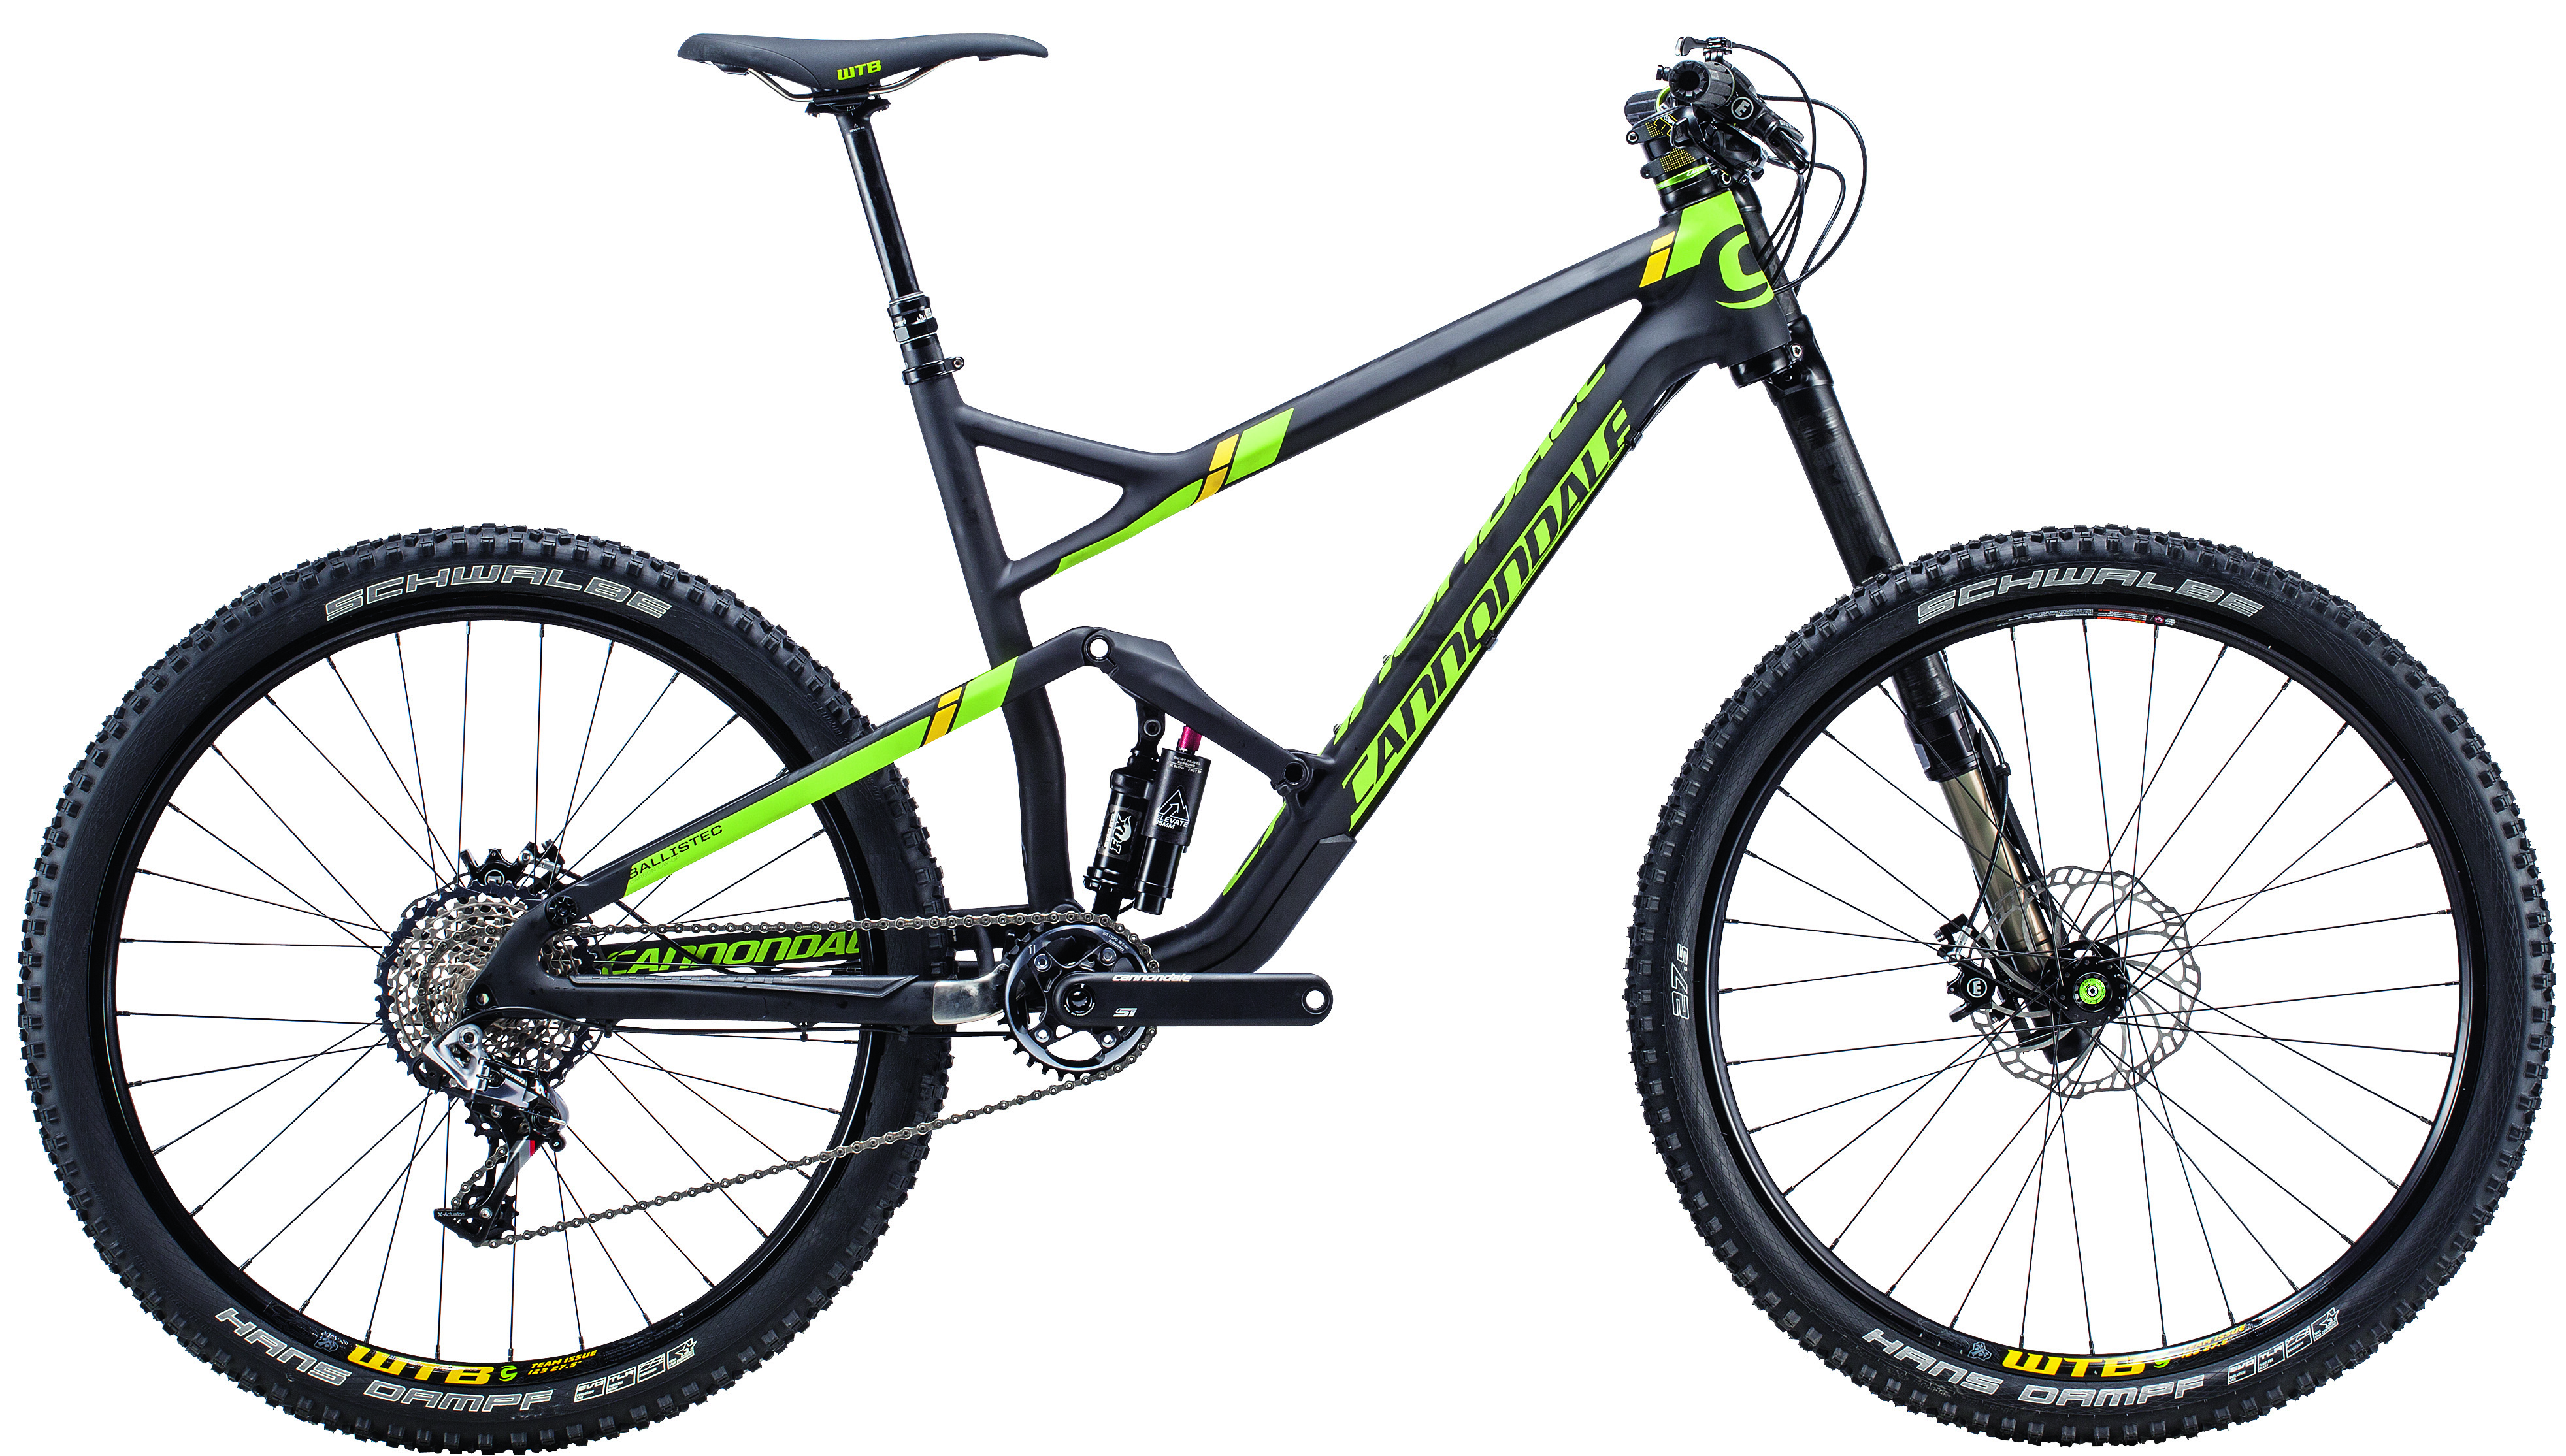 News: Cannondale Announces New 2015 Jekyll 27.5